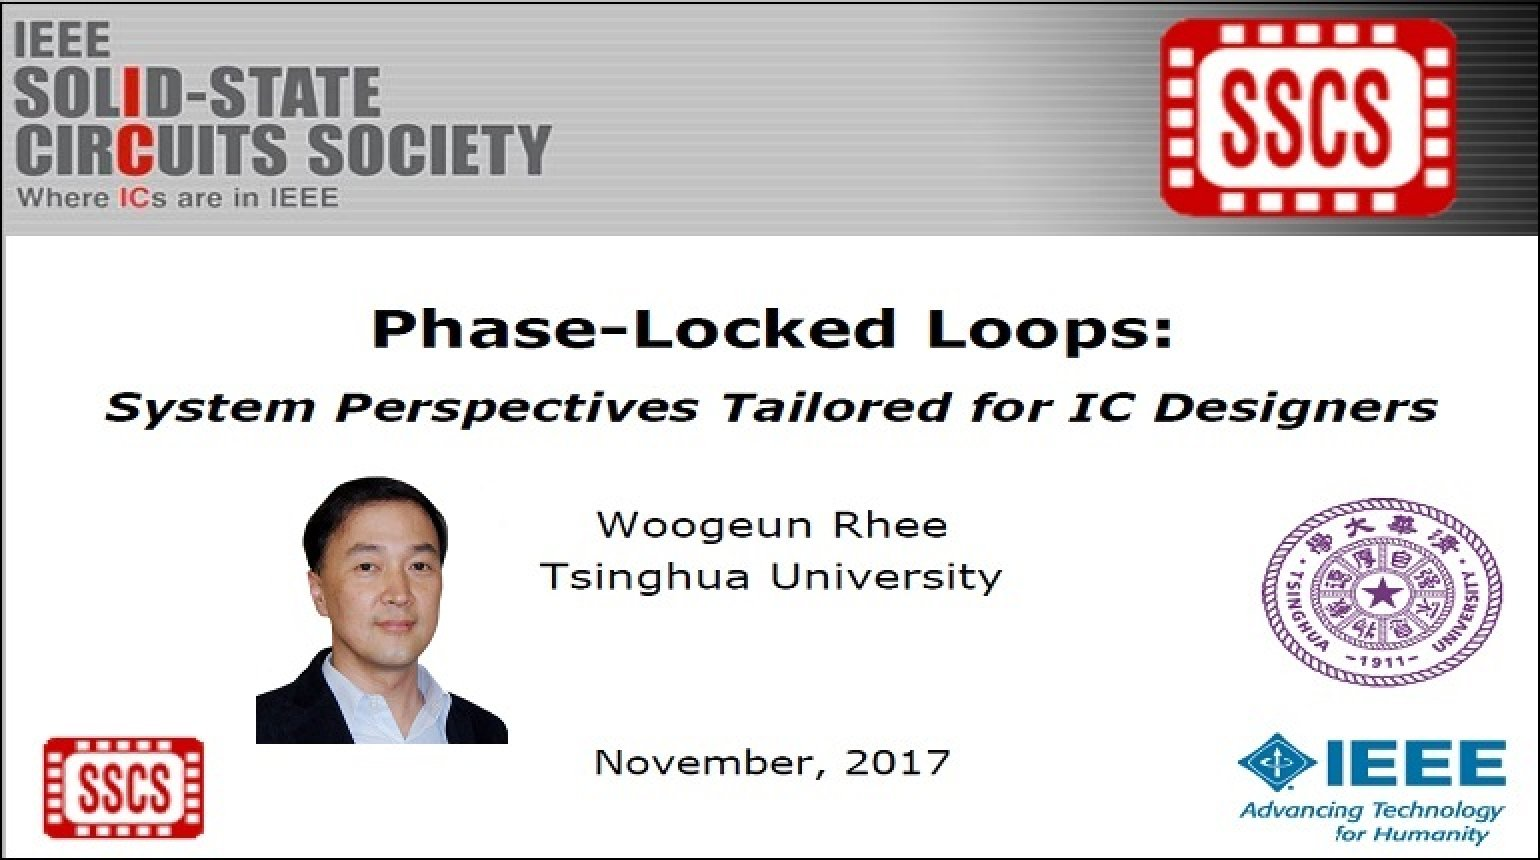 Phase-Locked Loops: System Perspectives Tailored for IC Designers Video